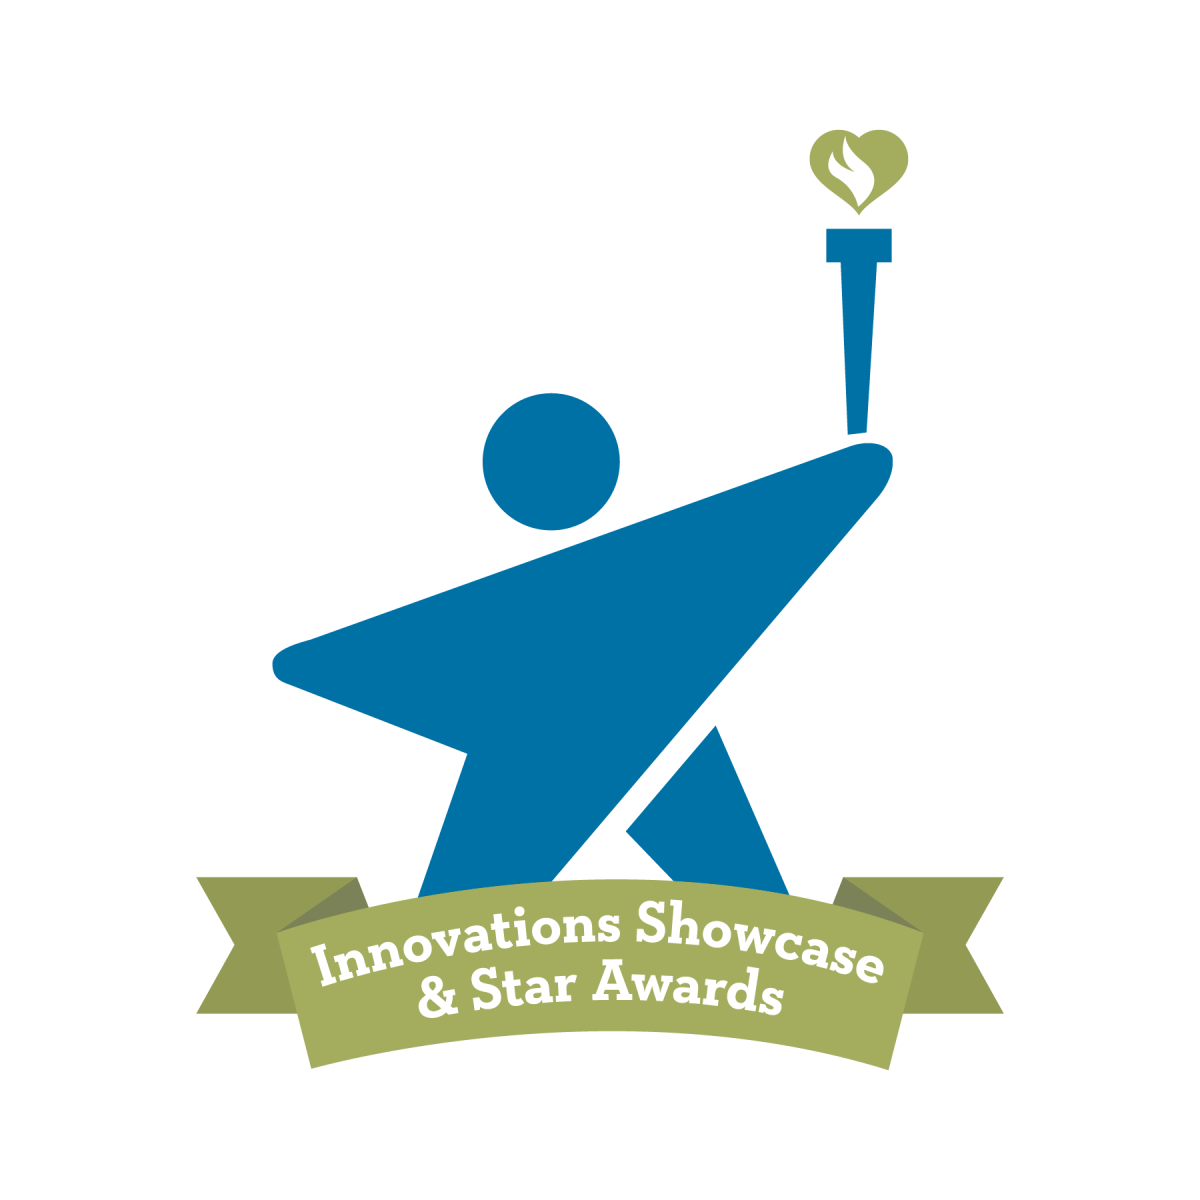 Celebrate Your Stars! Nominations are Now Open for Our Time to Shine Innovation & Star Awards!